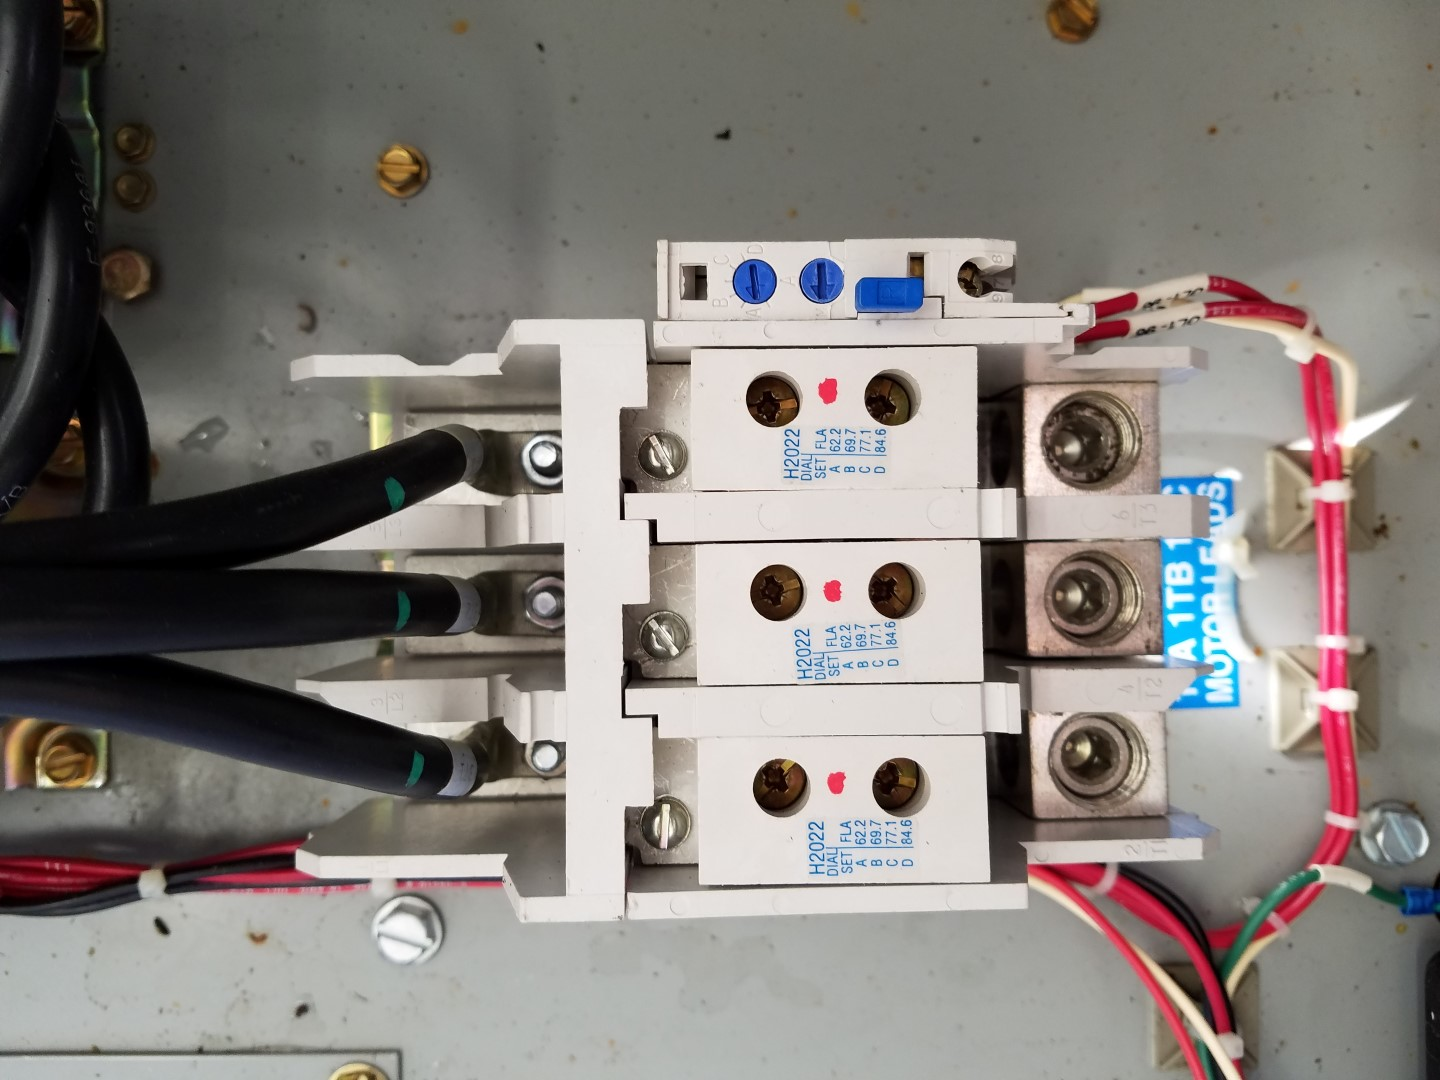 Used electrical panel with cuttler-hammer main breaker and byp ... on electrical committee, electrical receptacle, electrical fuse, electrical boxes types, electrical power, electrical conduit, electrical pipe, electrical multimeter, electrical junction boxes, electrical header, electrical equipment, electrical plug in, electrical switches, electrical disconnect, electrical cabinet, electrical monitor, electrical switch, electrical work, electrical control station, electrical switchboard,